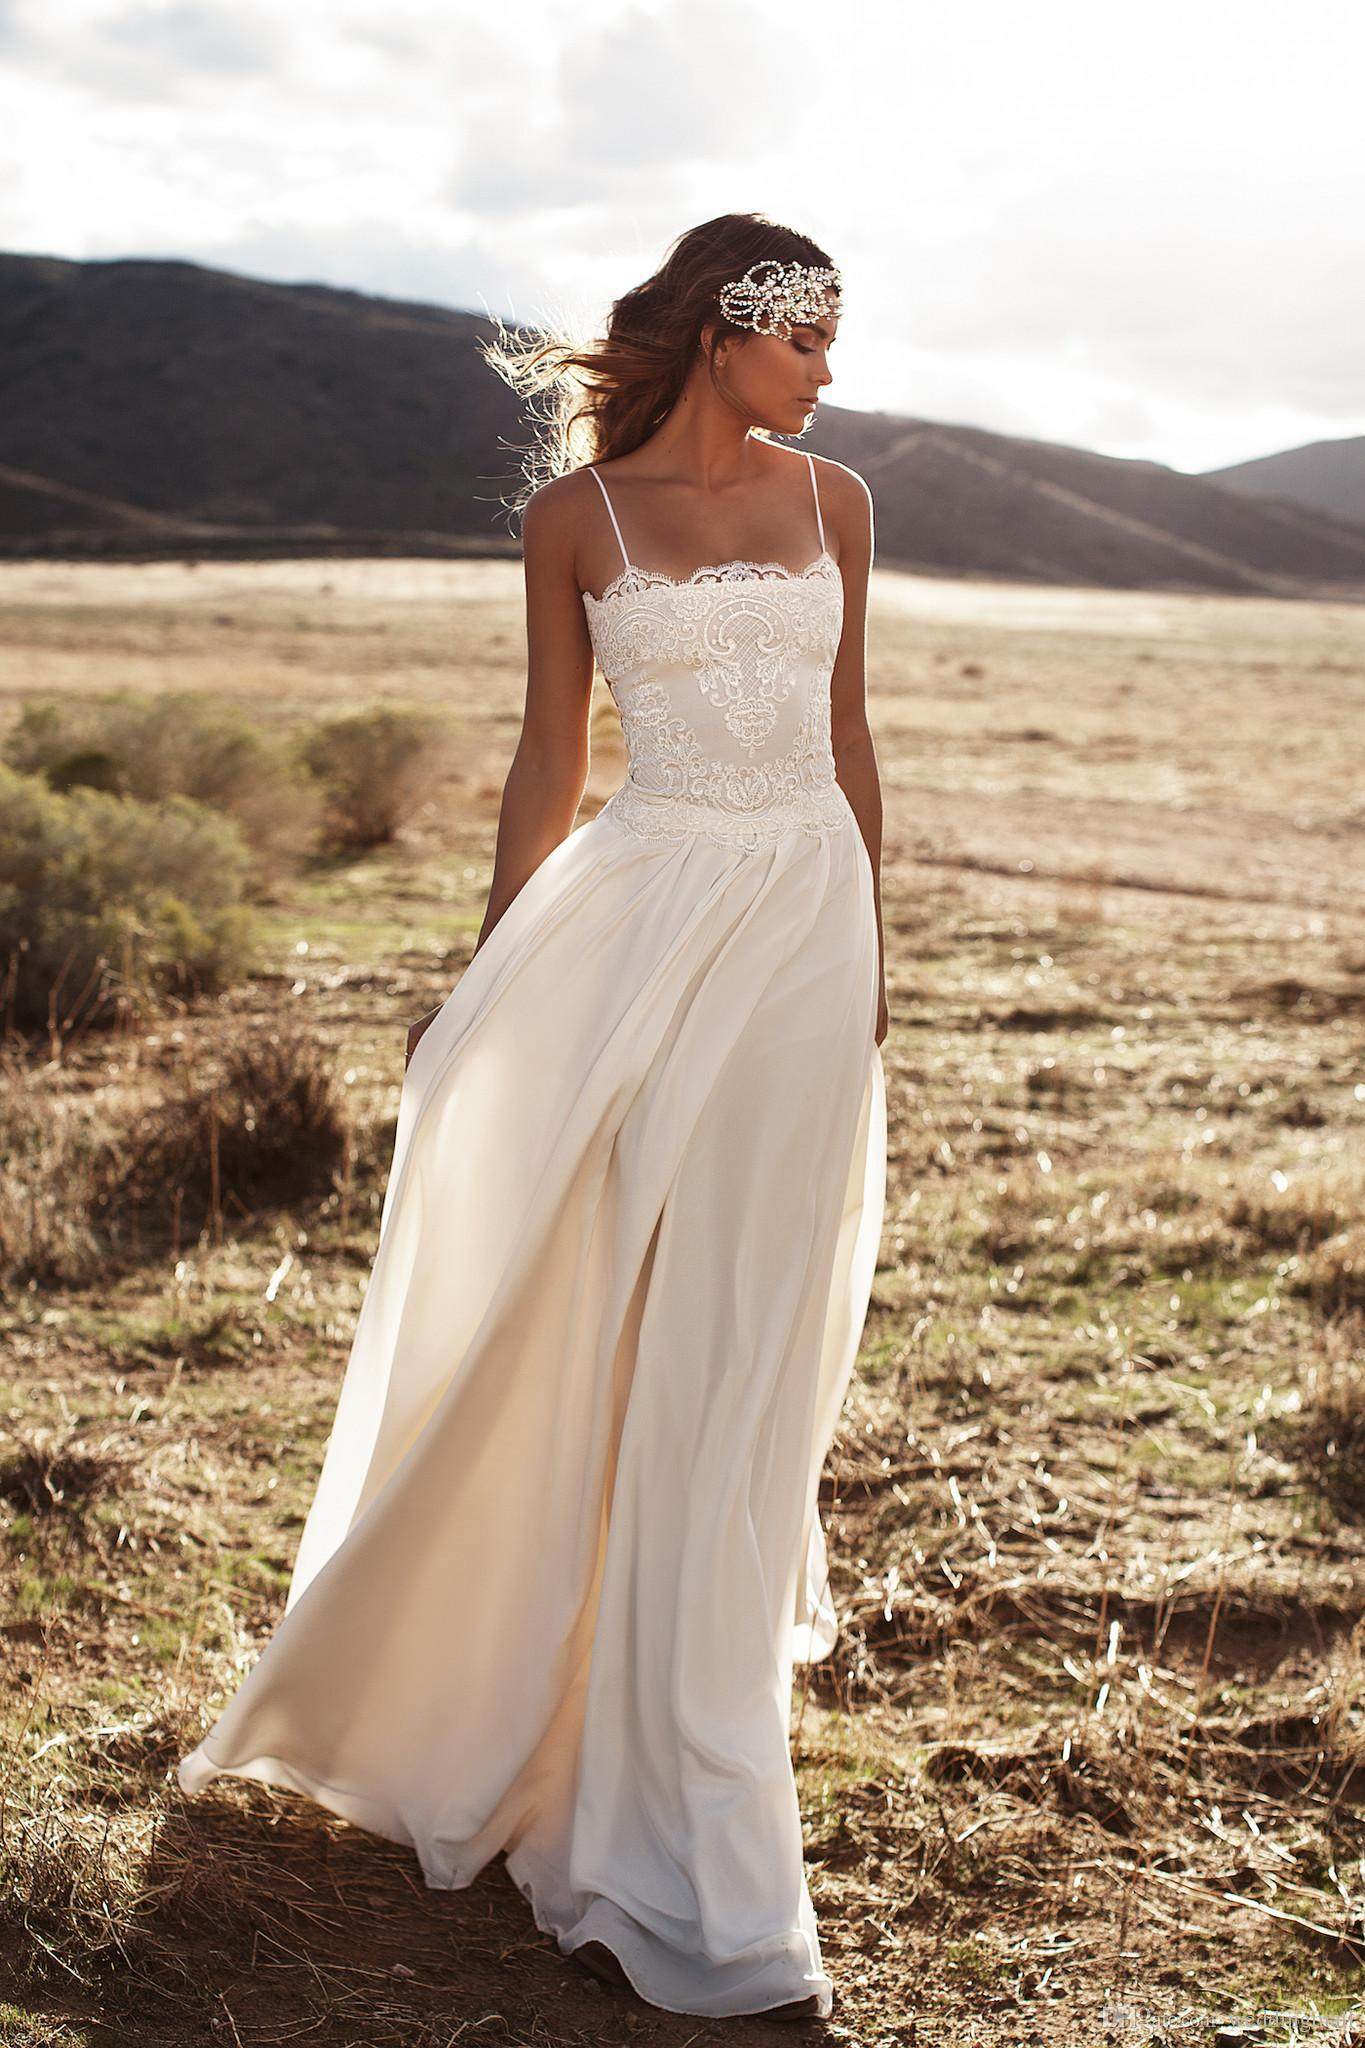 2016 New Summer Wedding Dresses Spaghetti Straps Lace Chiffon Floor Length A-Line Bridal Gowns Beach Simple Plus Size Cheap Wedding Gowns